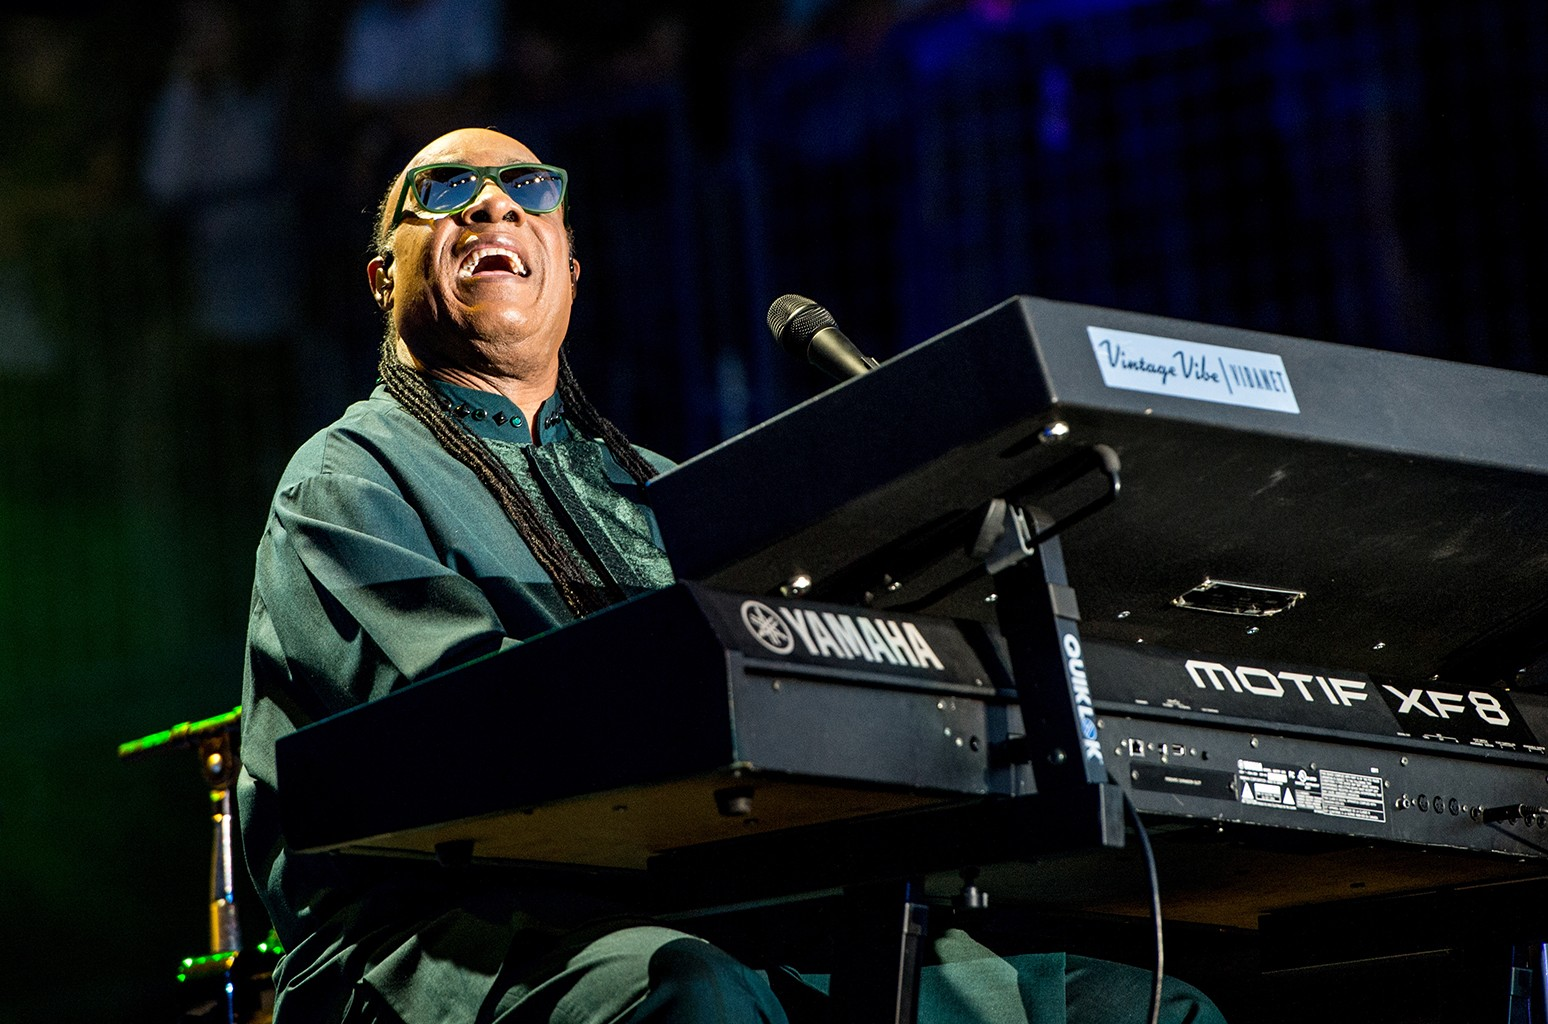 Stevie Wonder performs on May 27, 2016 in Napa, Calif.